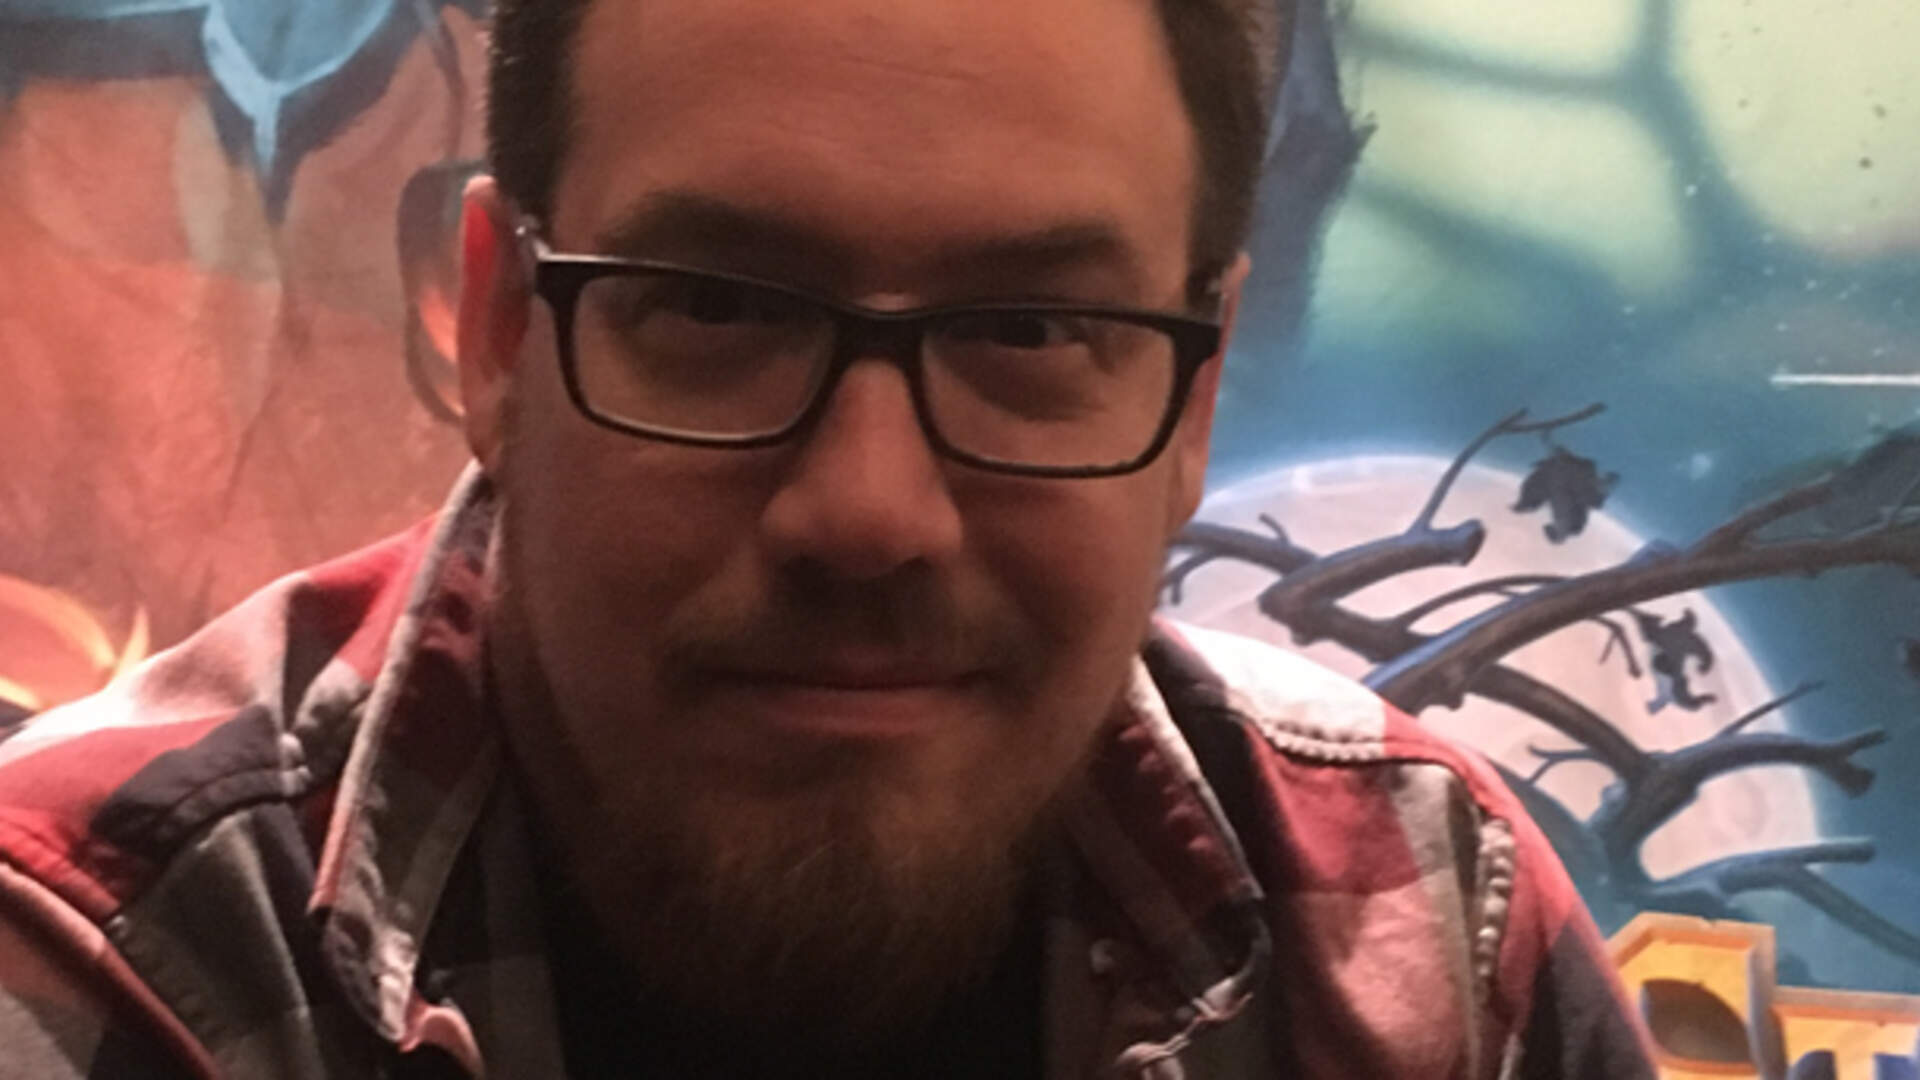 Ben Brode on How Blizzard Will Keep Hearthstone's Metagame Fresh in the Wake of Witchwood 's Release